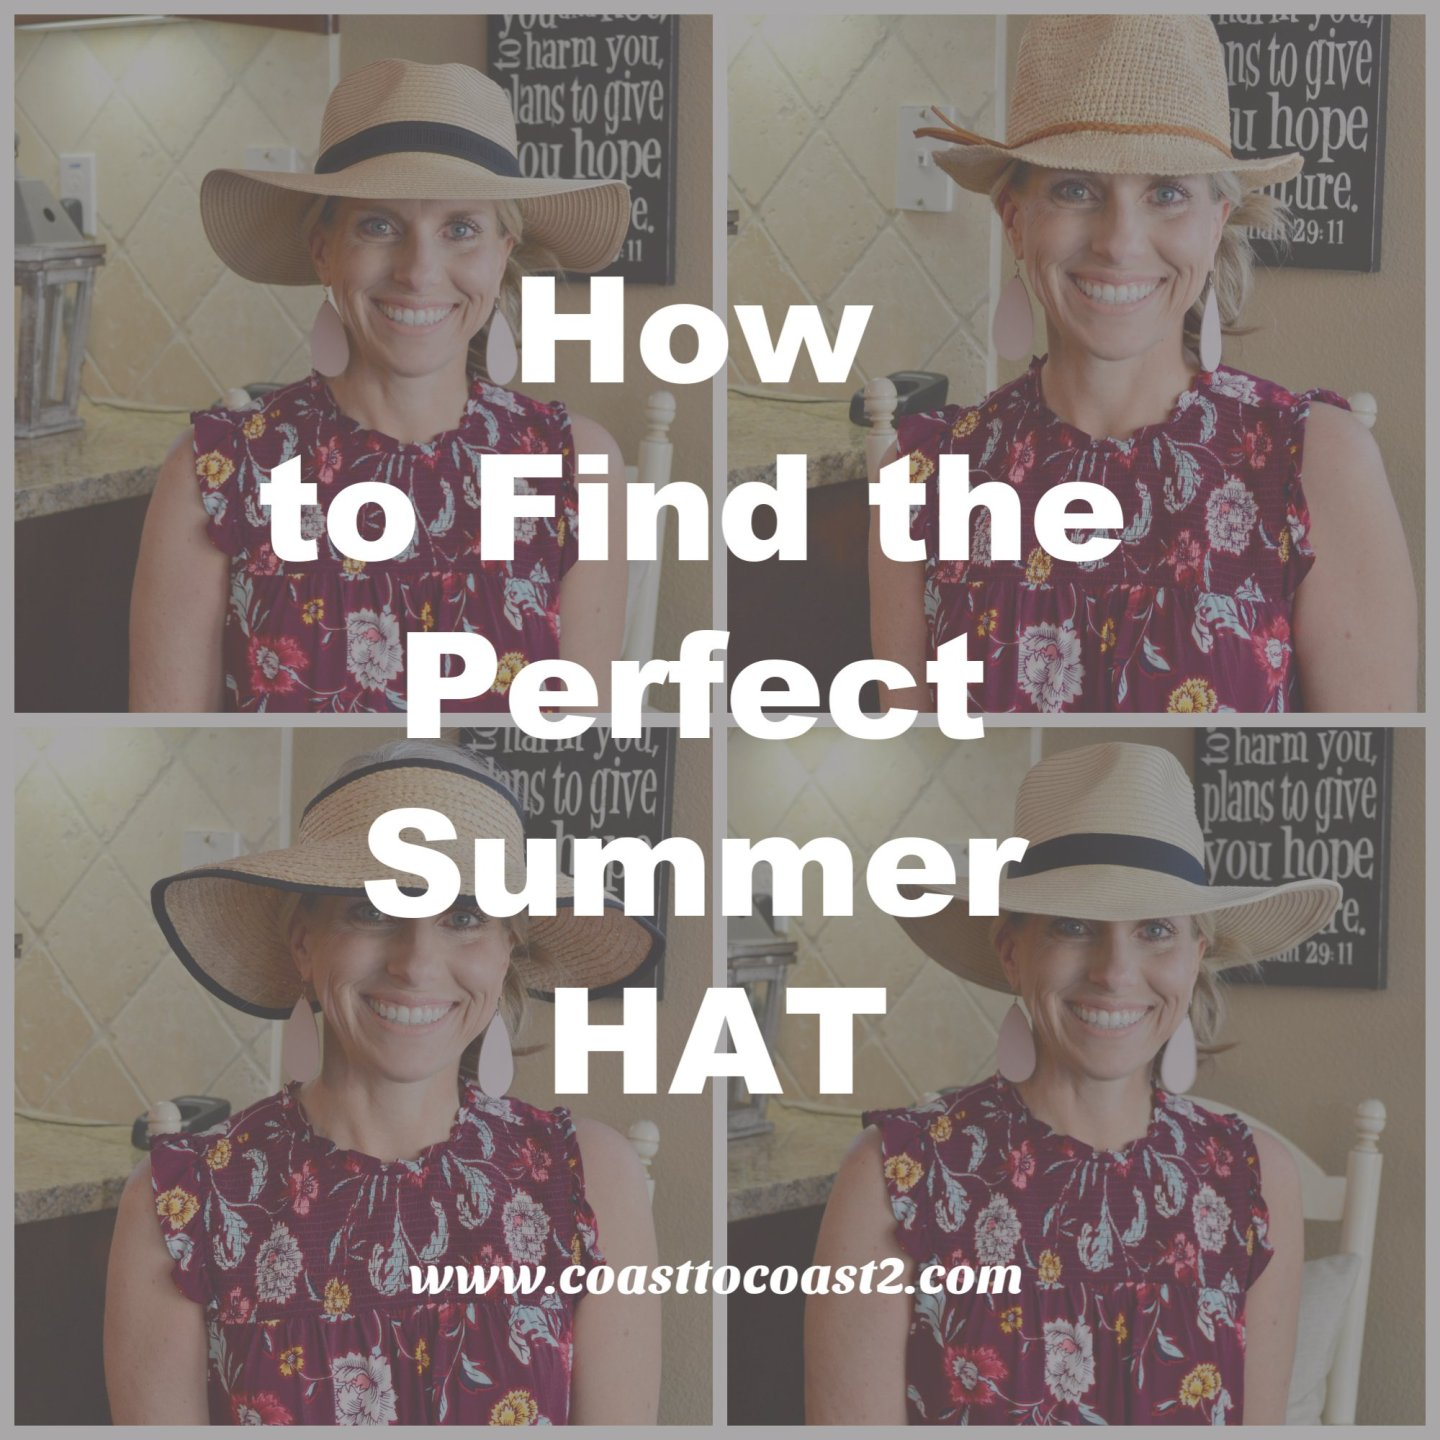 How to find the Perfect Summer Hat